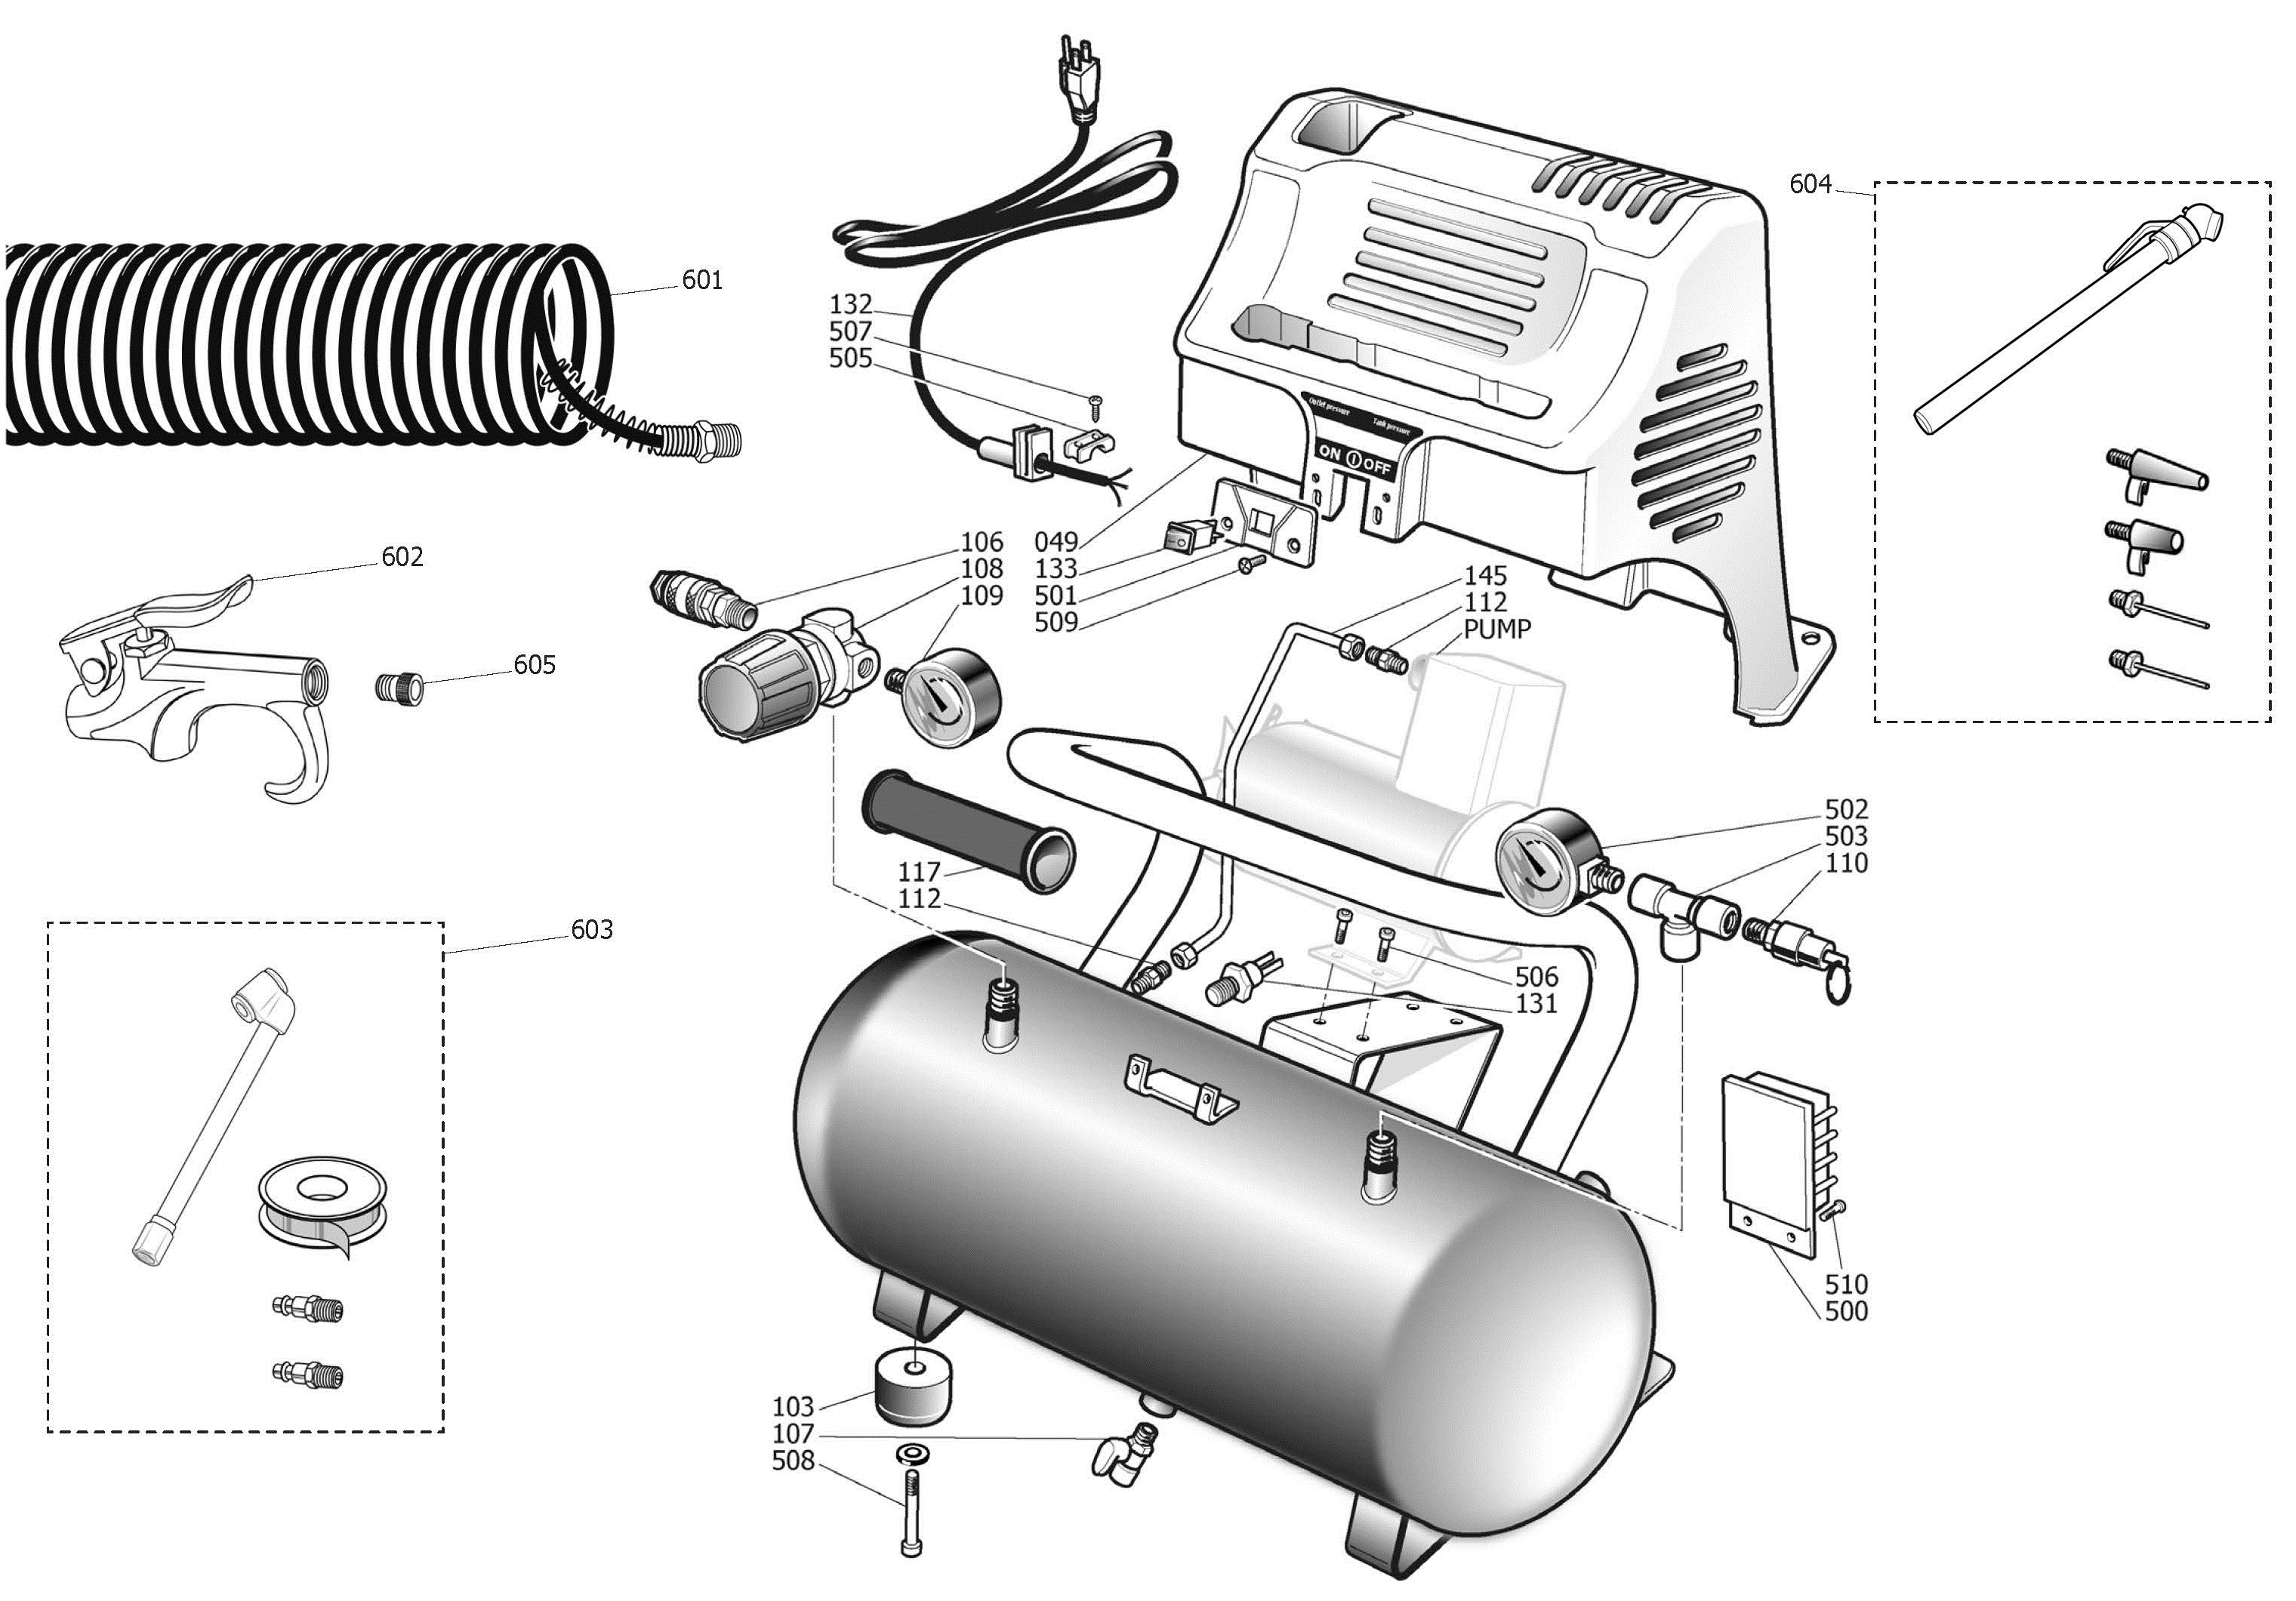 107.10265 - Oil-Free Portable Air Compressor Repair Parts schematic